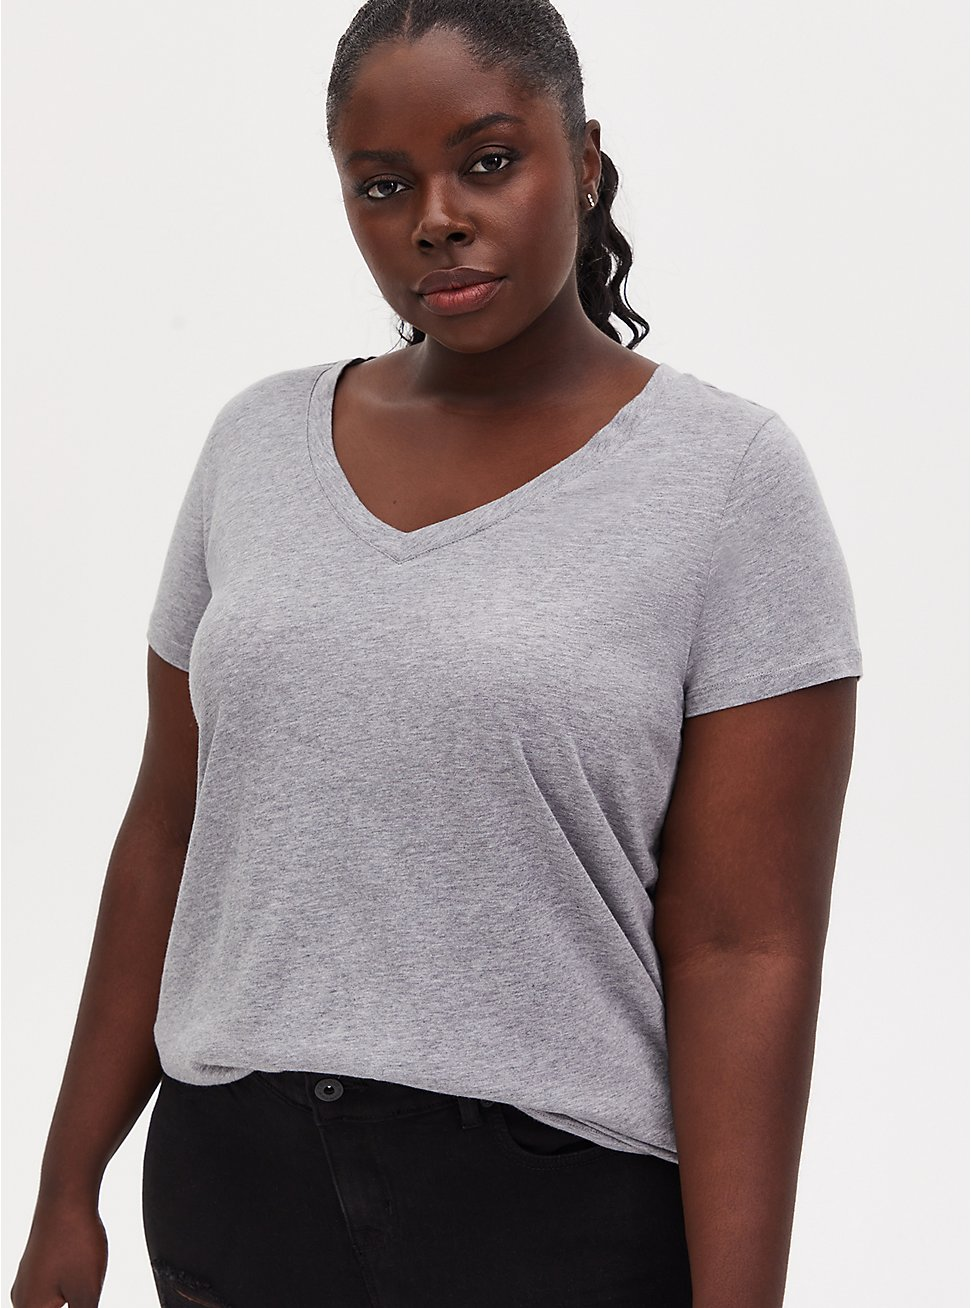 Classic Fit V-Neck Tee - Heritage Cotton Light Grey, HEATHER GREY, hi-res